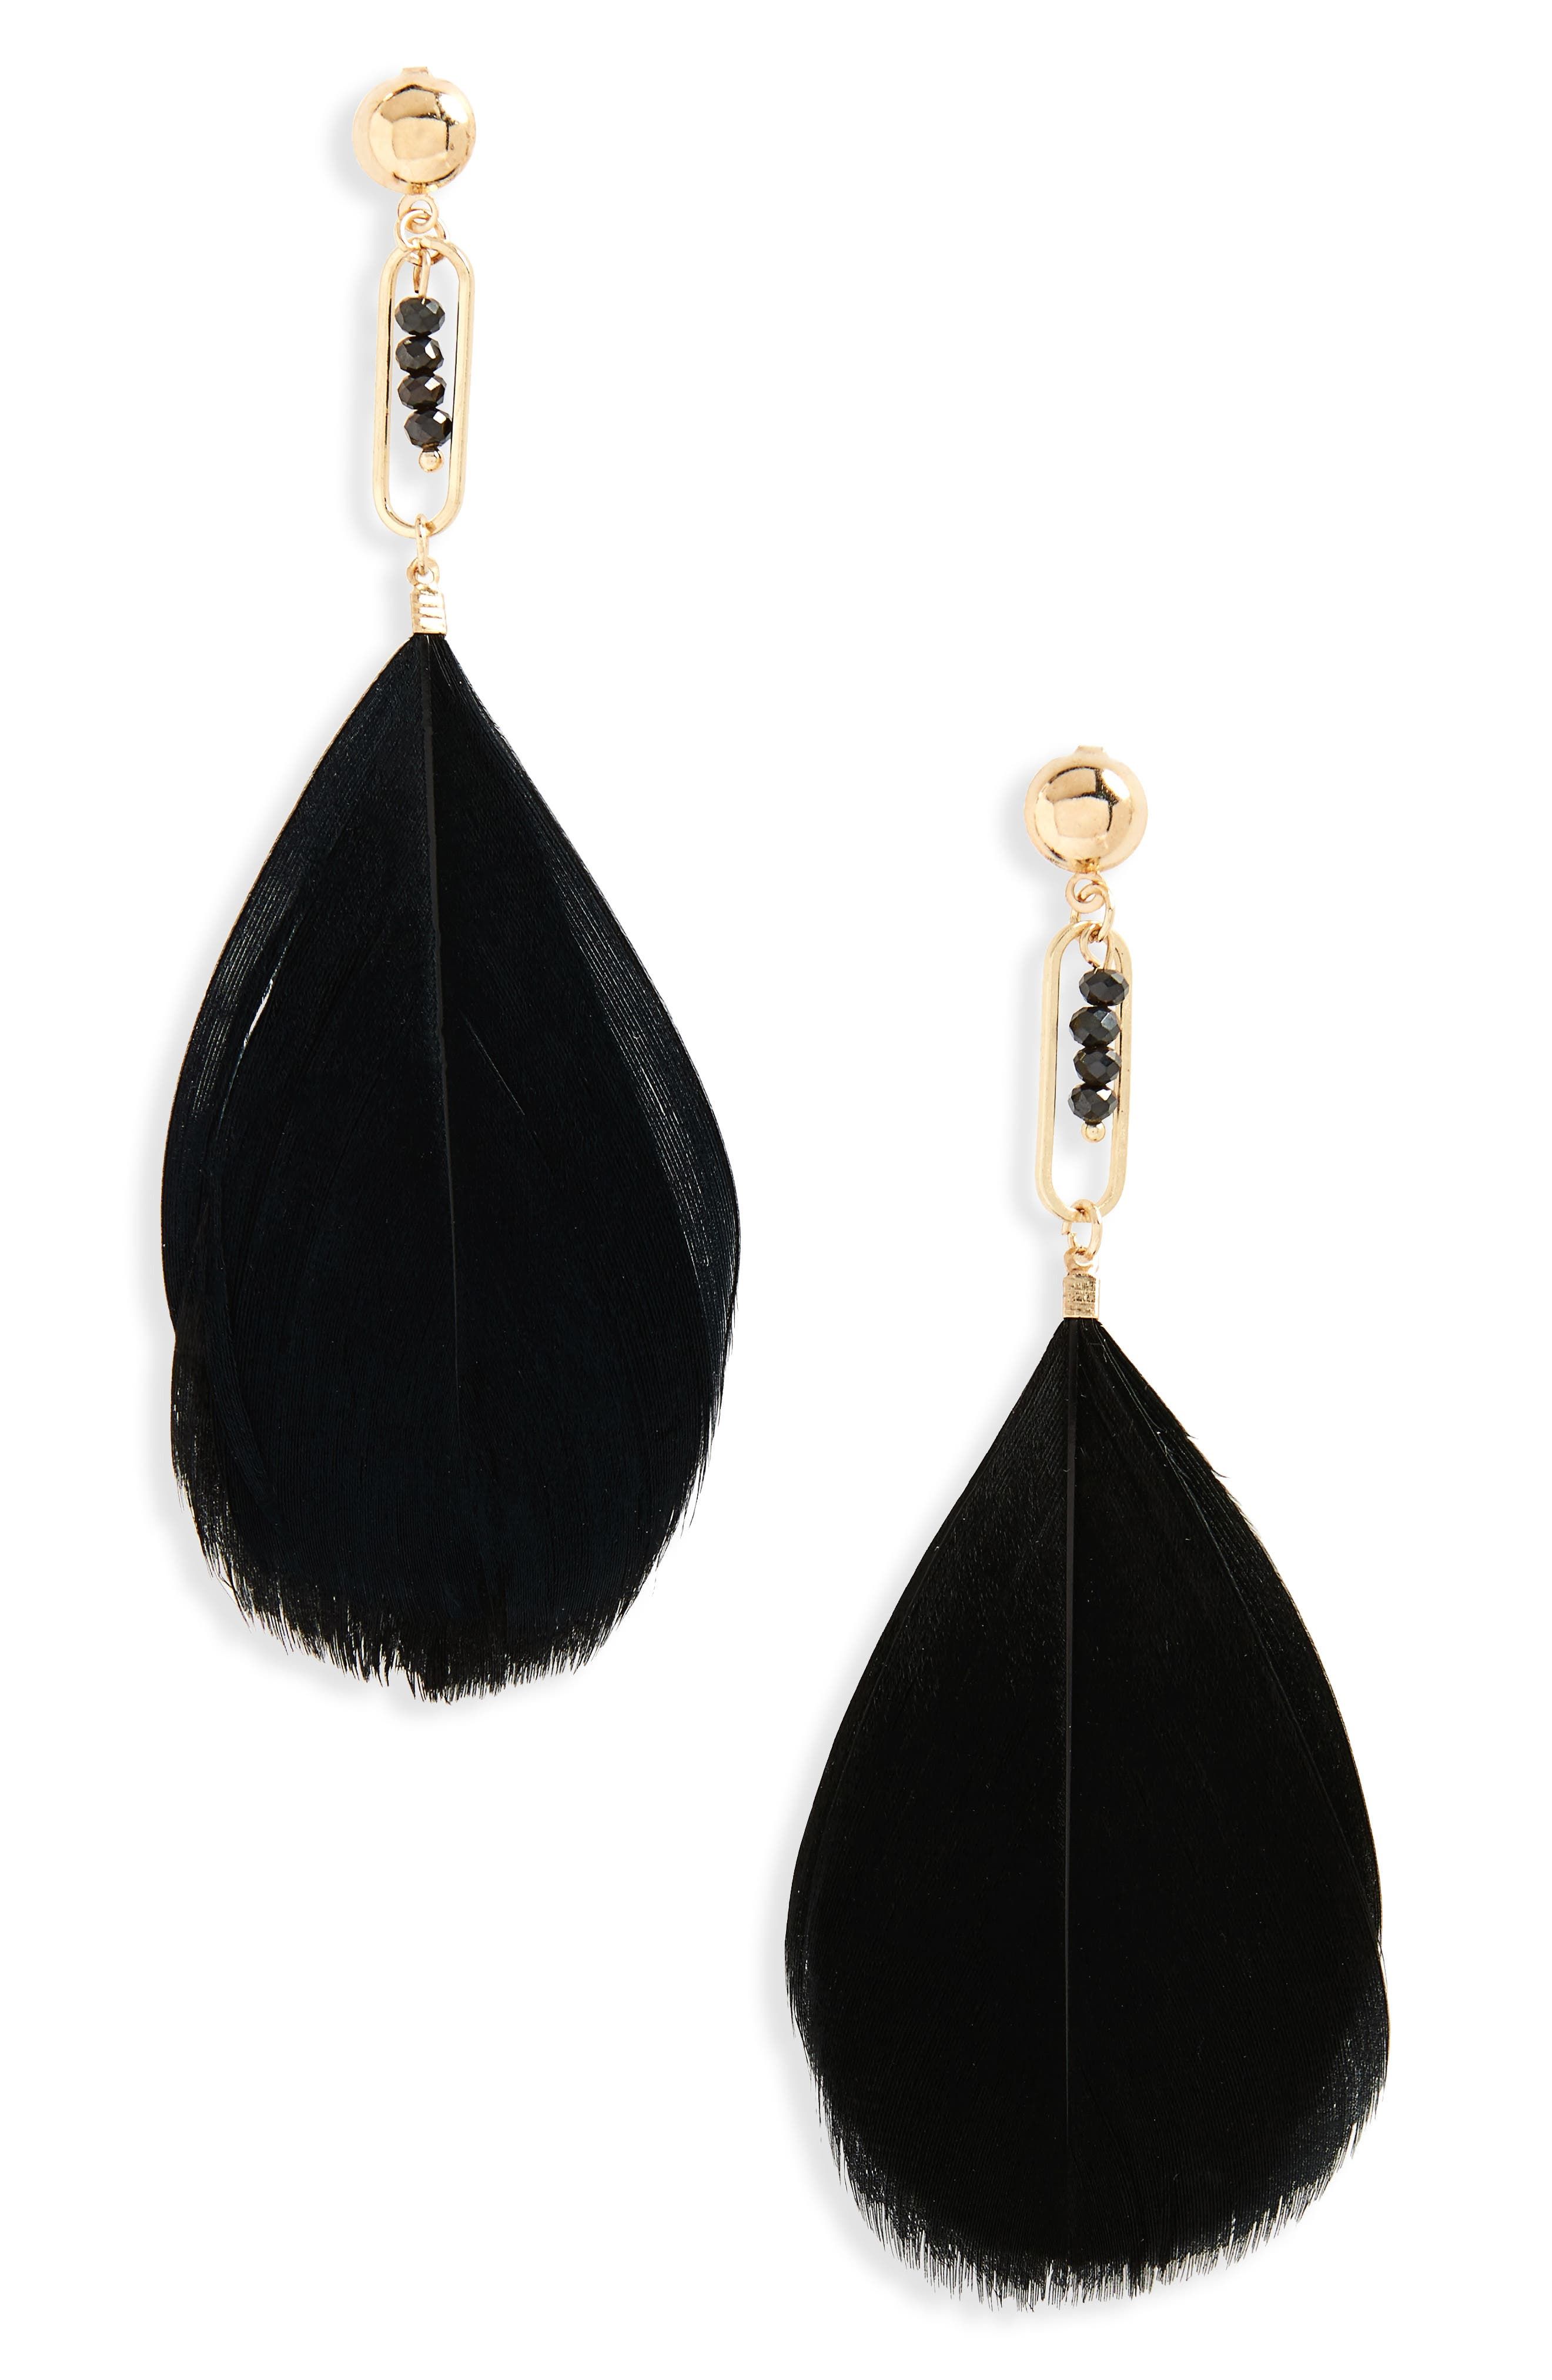 Bead & Feather Drop Earrings,                             Main thumbnail 1, color,                             Black/ Gold